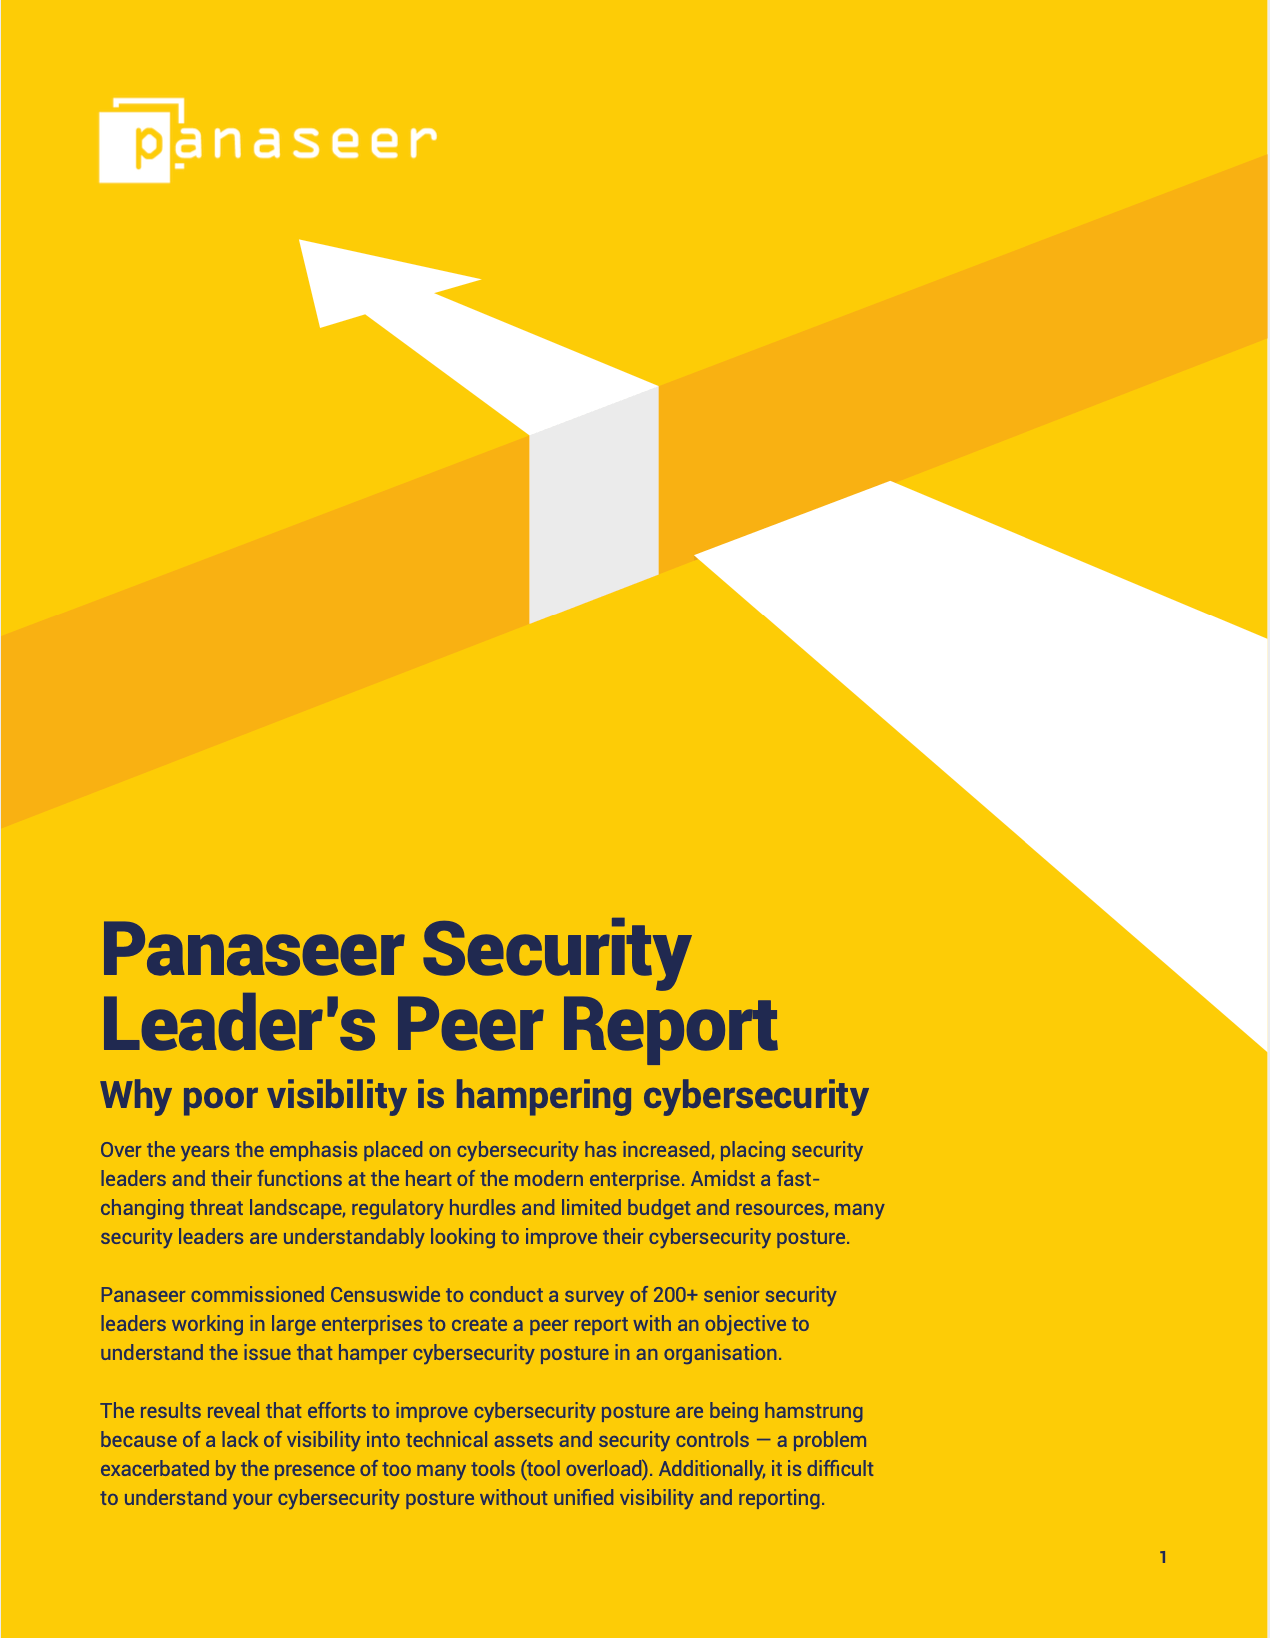 Security Leader's Peer Report: Why Poor Visibility is Hampering Cybersecurity